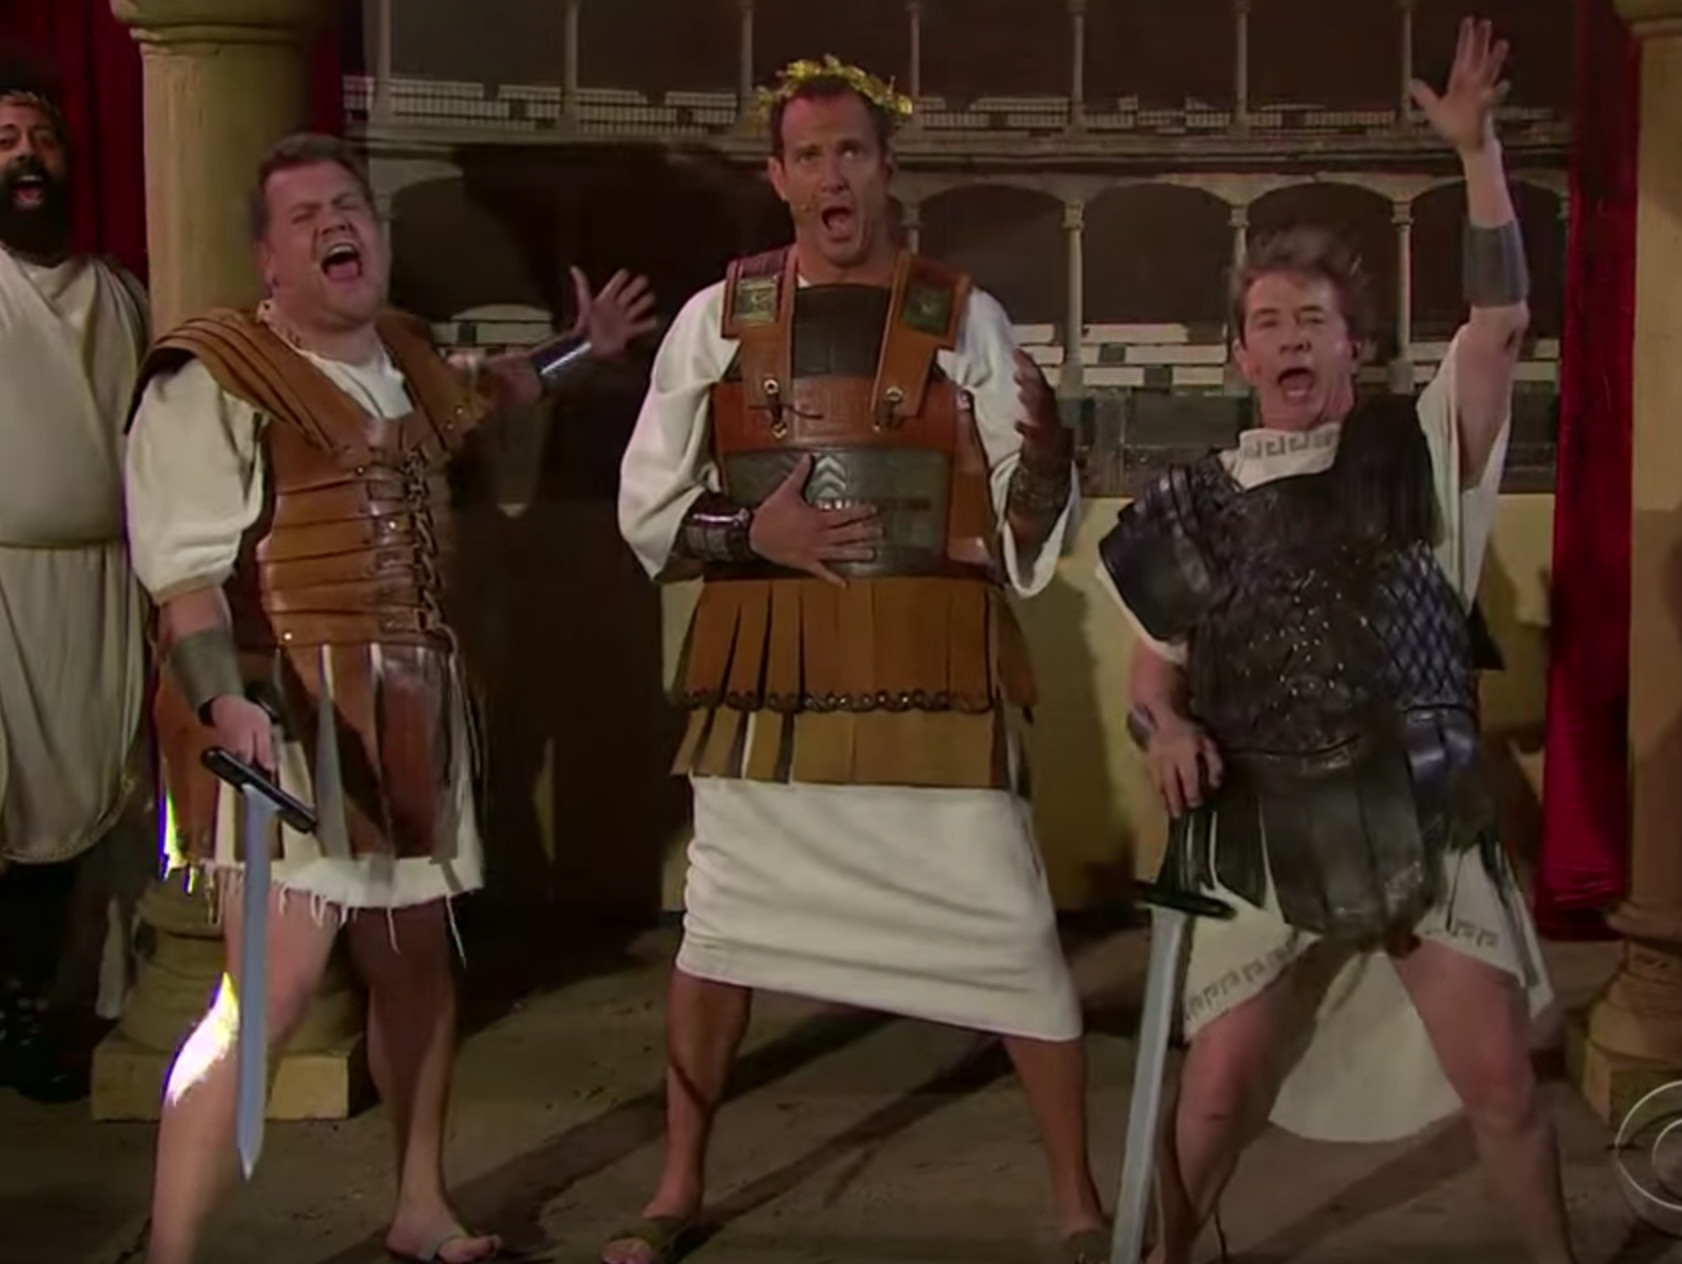 James Corden, Martin Short, and Will Arnett created some inappropriate musicals